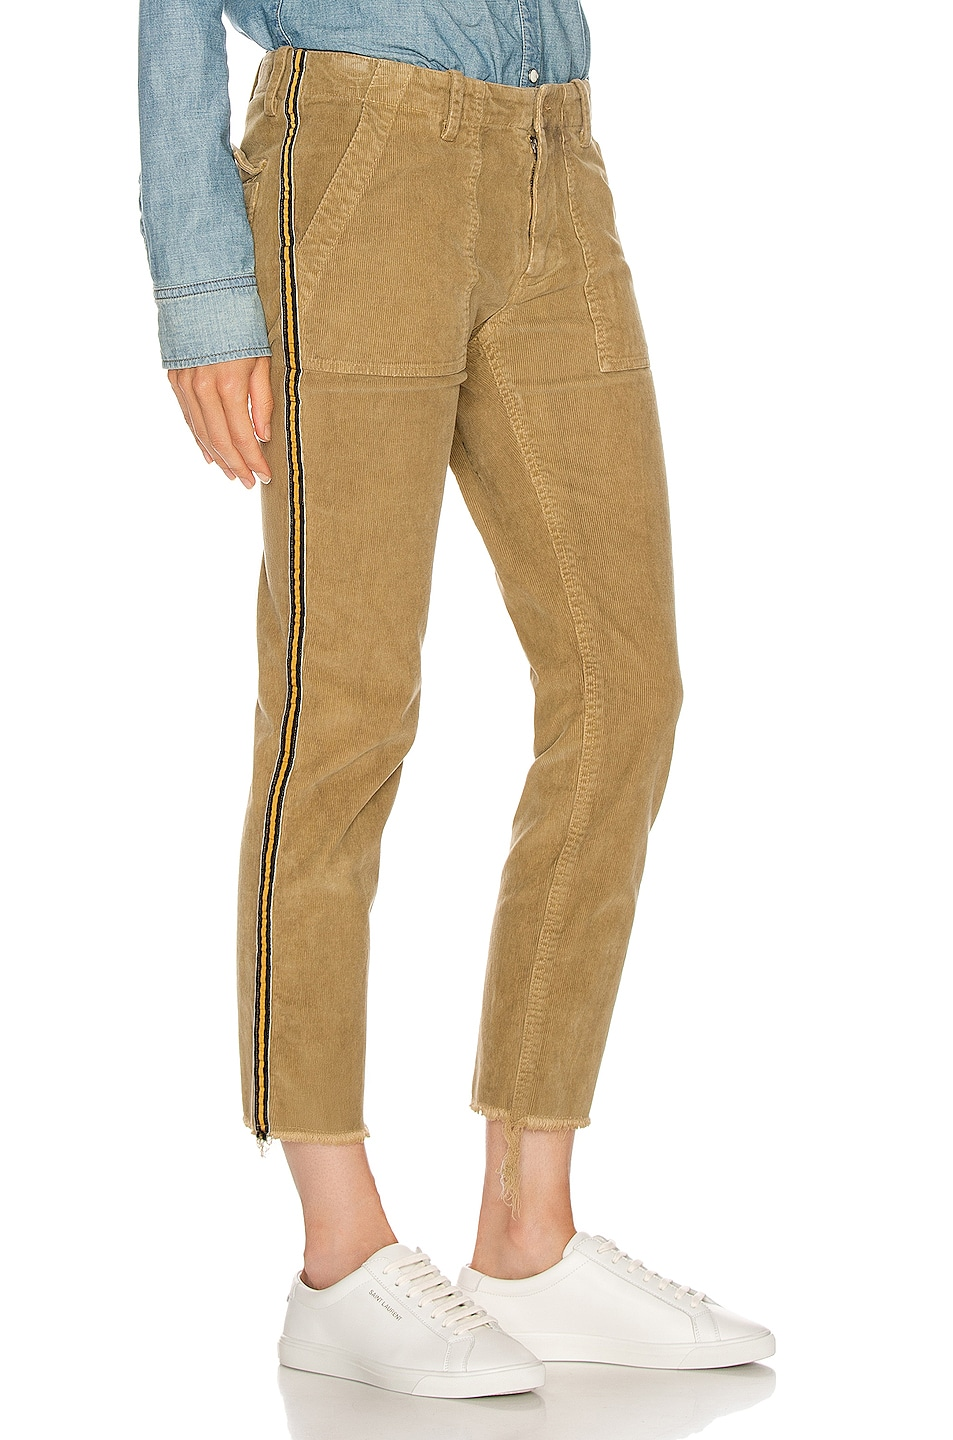 Image 3 of NILI LOTAN Jenna Pant with Tape in Mossy Gold, Black & Gold